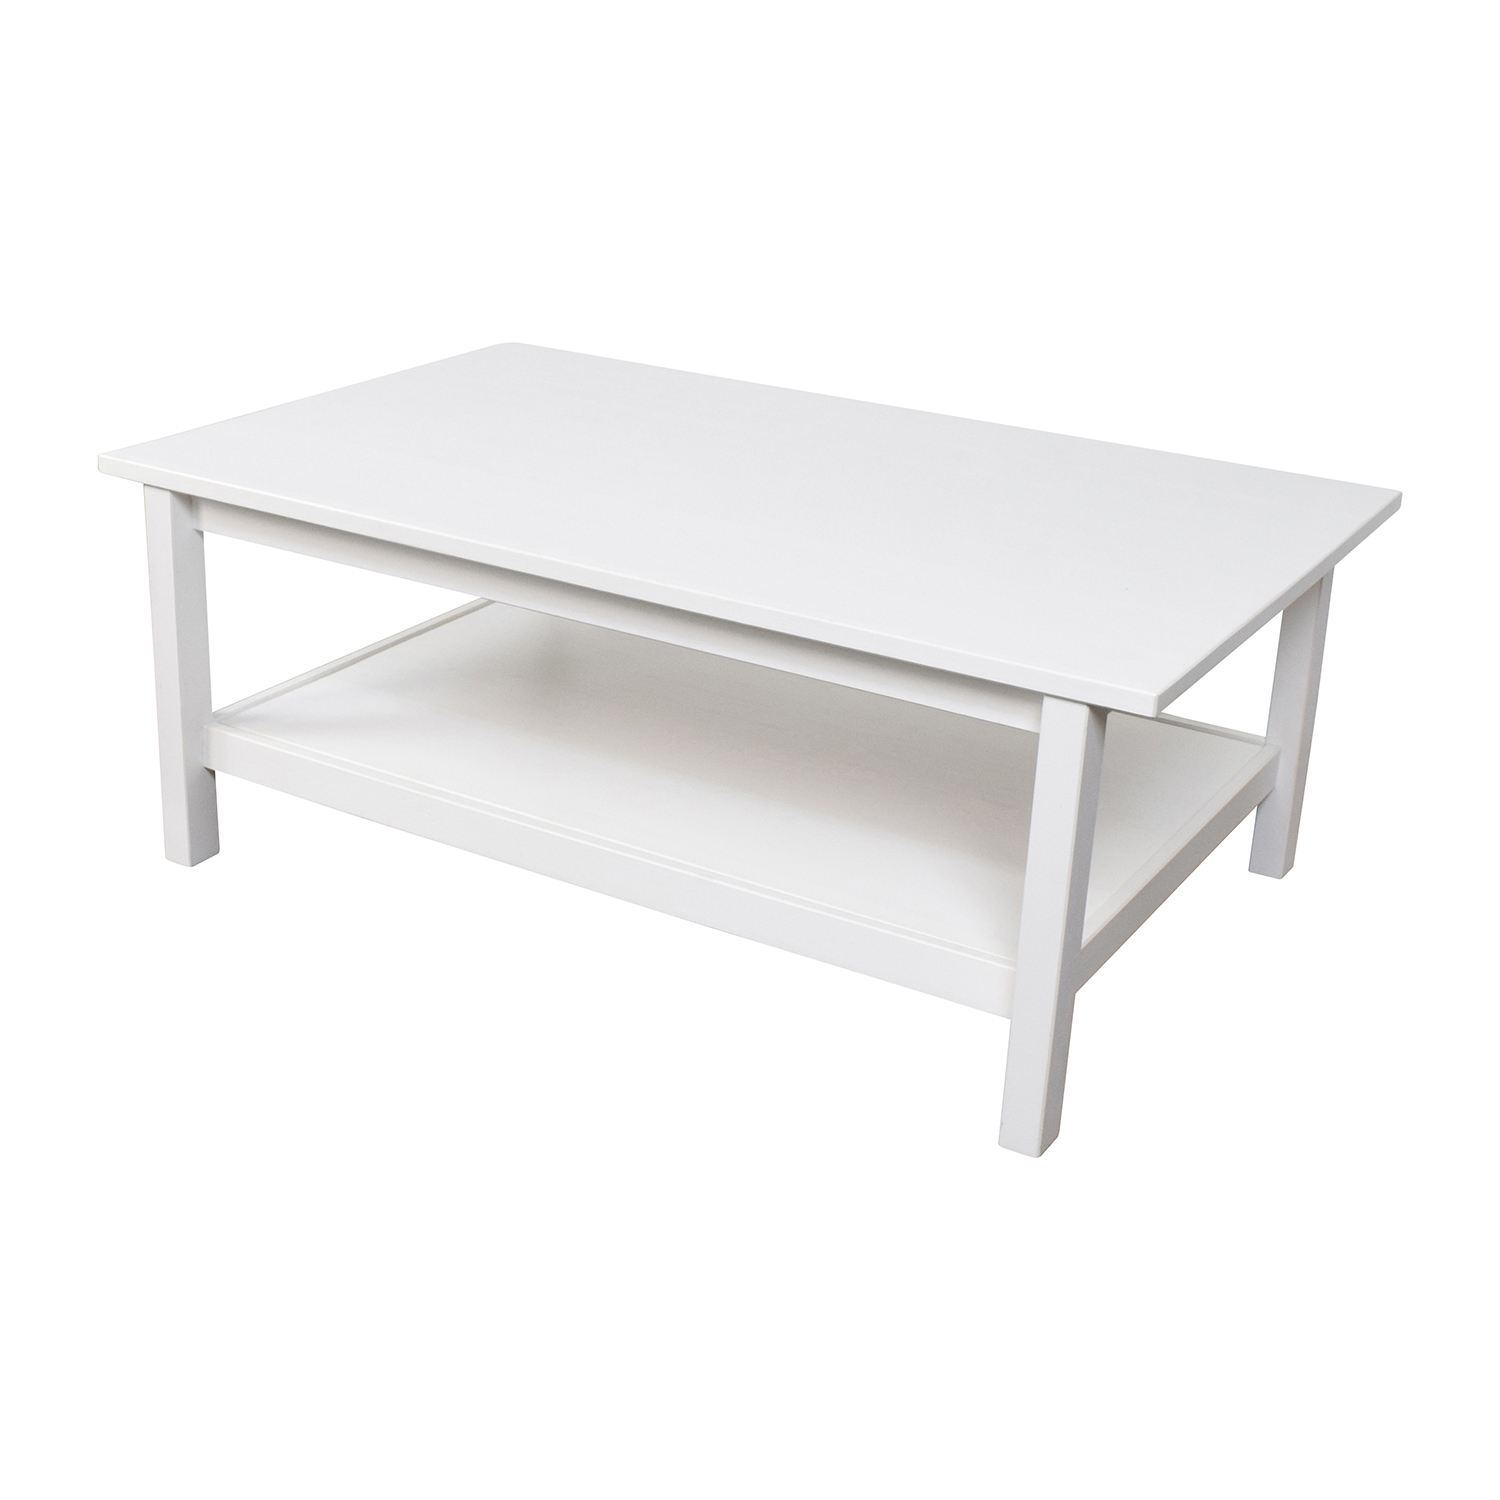 Hemnes Coffee Table Light Brown 118x75 Cm: Ikea Tisch Hemnes. Glasplatte F R Deinen Ikea Hemnes